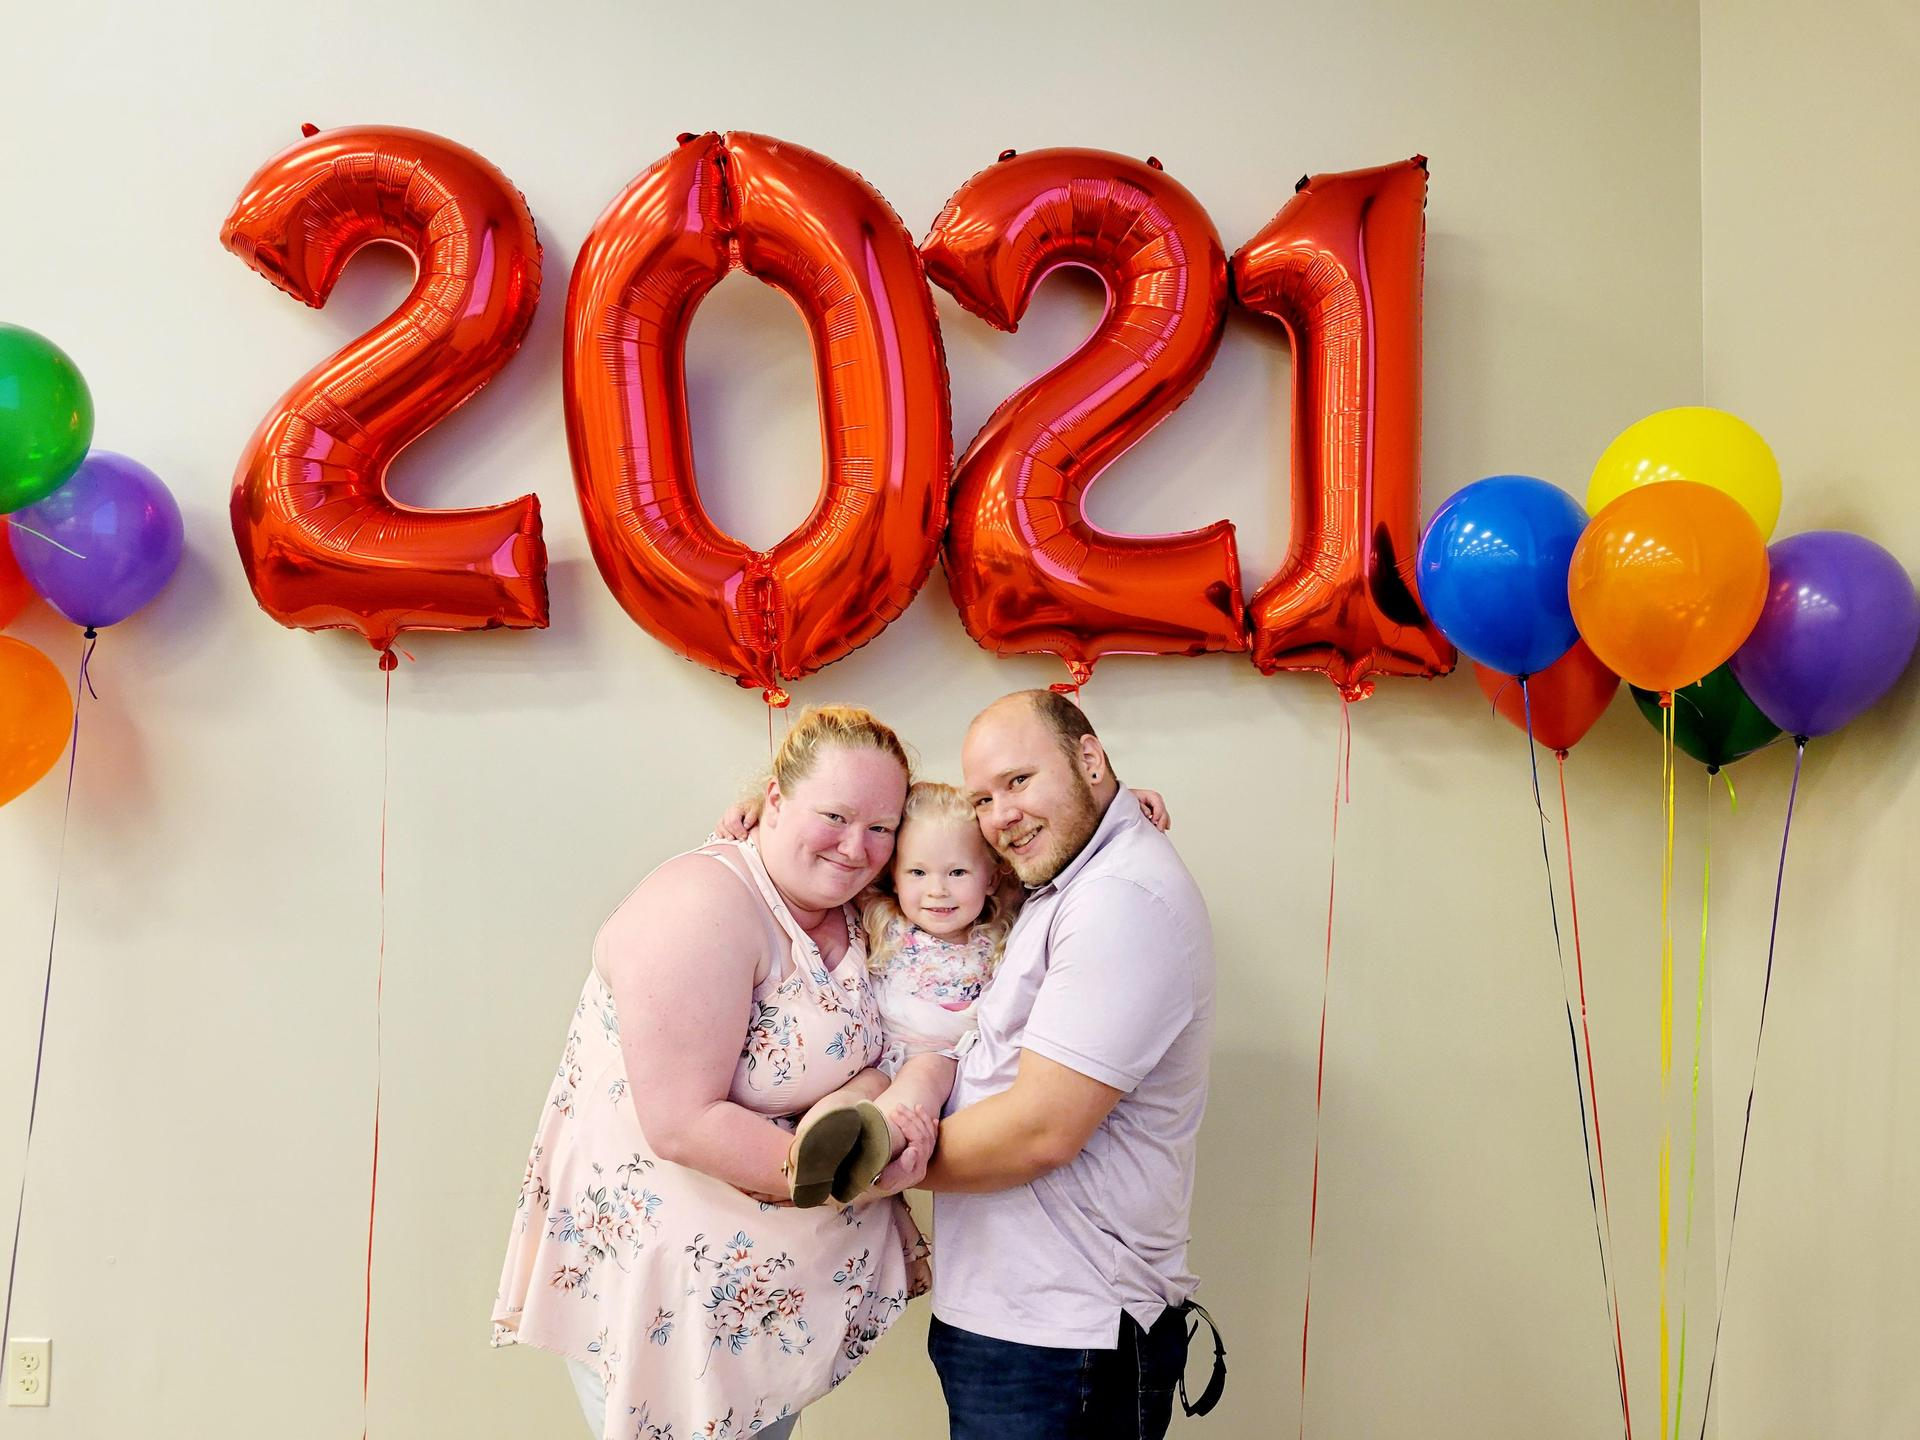 Parents posing for a photo with their daughter in front of 2021 graduation balloon banner